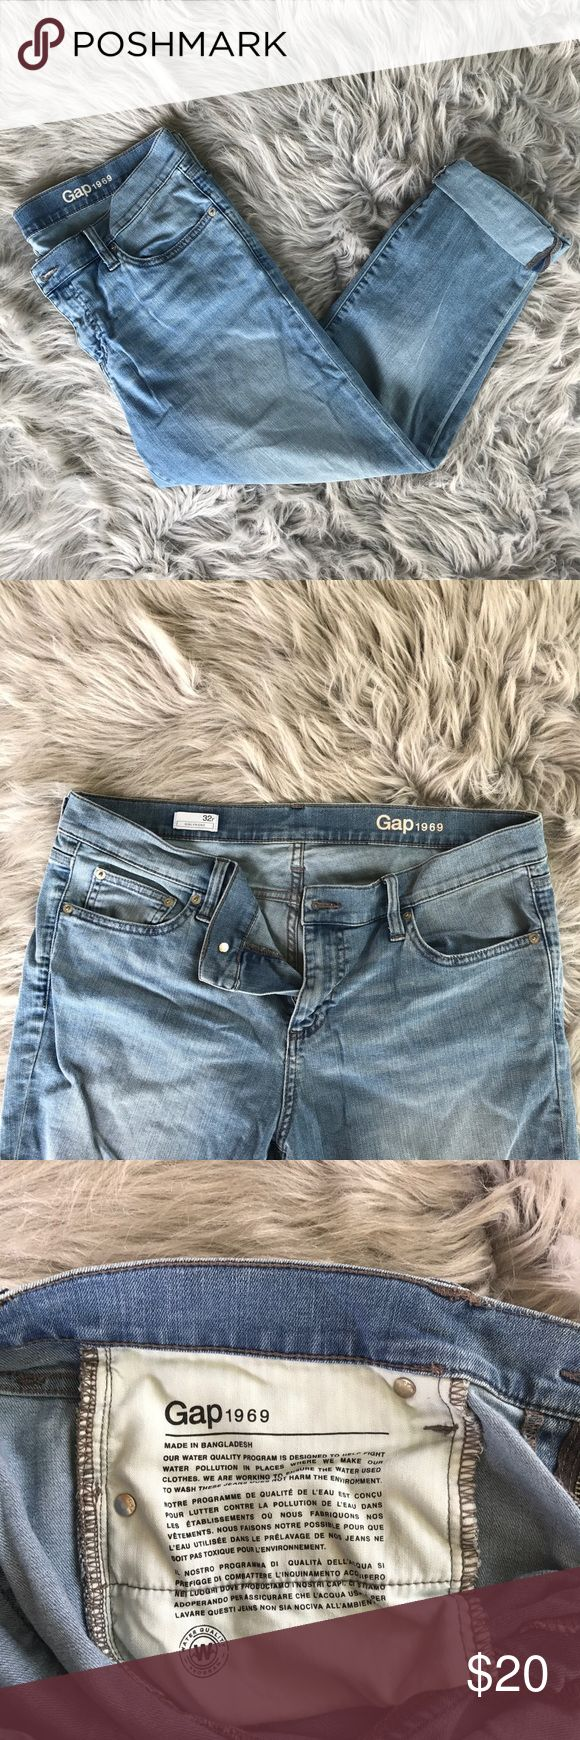 Gap Girlfriend Jeans Gently worn. No holes or stains. Pants can be rolled up as capris (as shown) or loose (not skinny jeans). Smoke free home. ❕better deal on shipping if you bundle❕ GAP Pants Ankle & Cropped